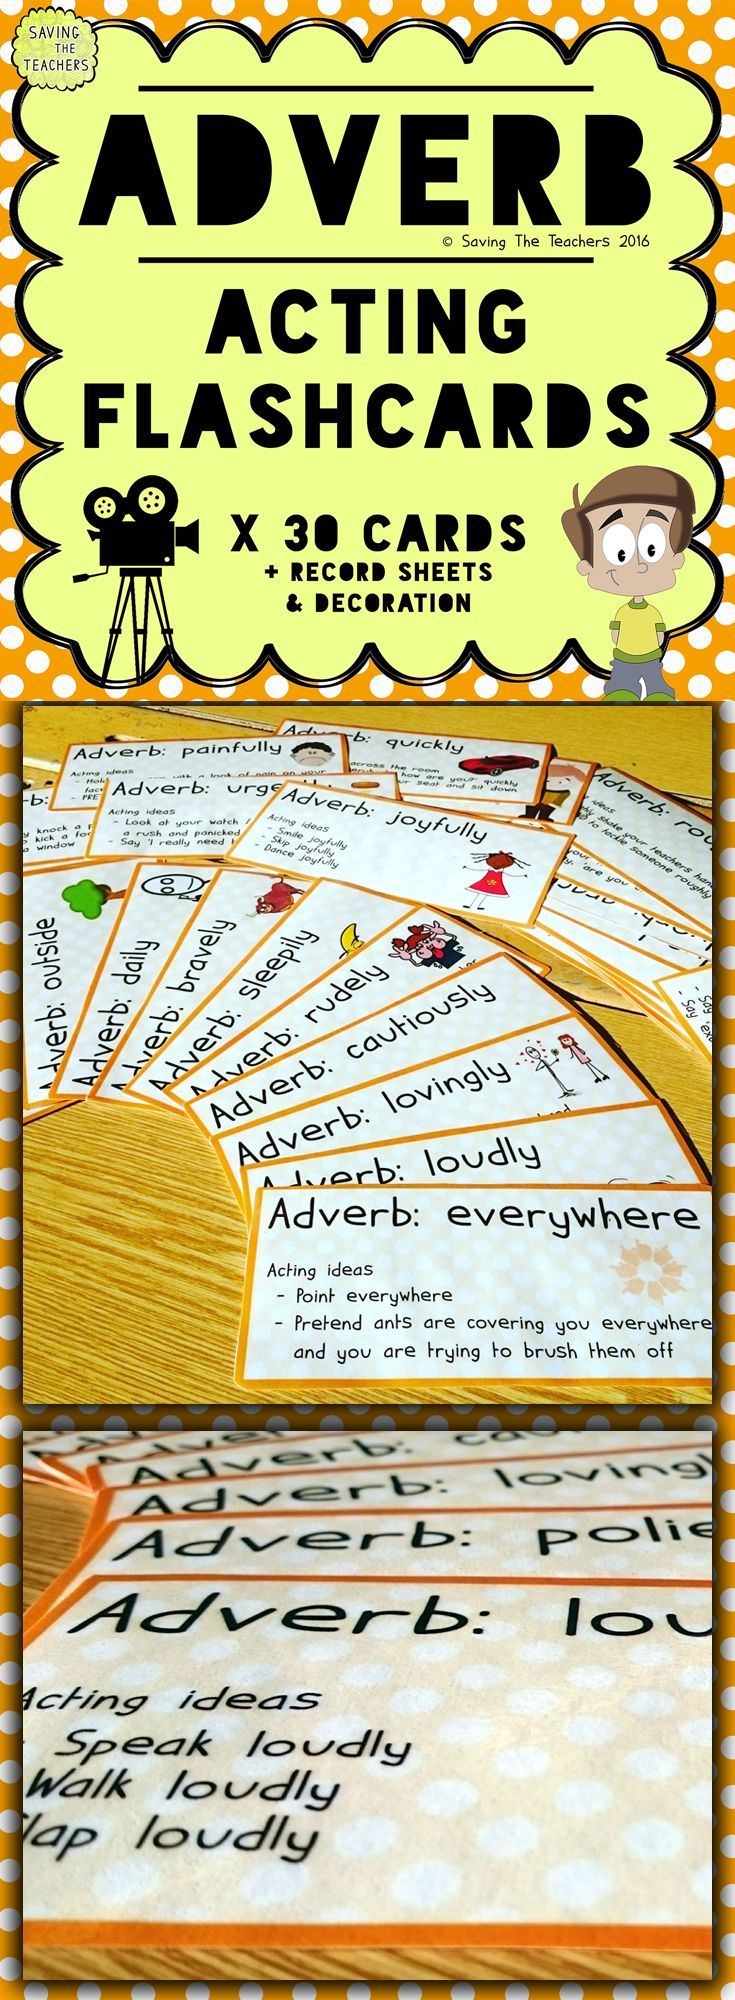 Worksheet Adverb Games For Kids 1000 ideas about adverbs on pinterest grammar lessons adverb acting is a fun and entertaining activity for both the teacher children